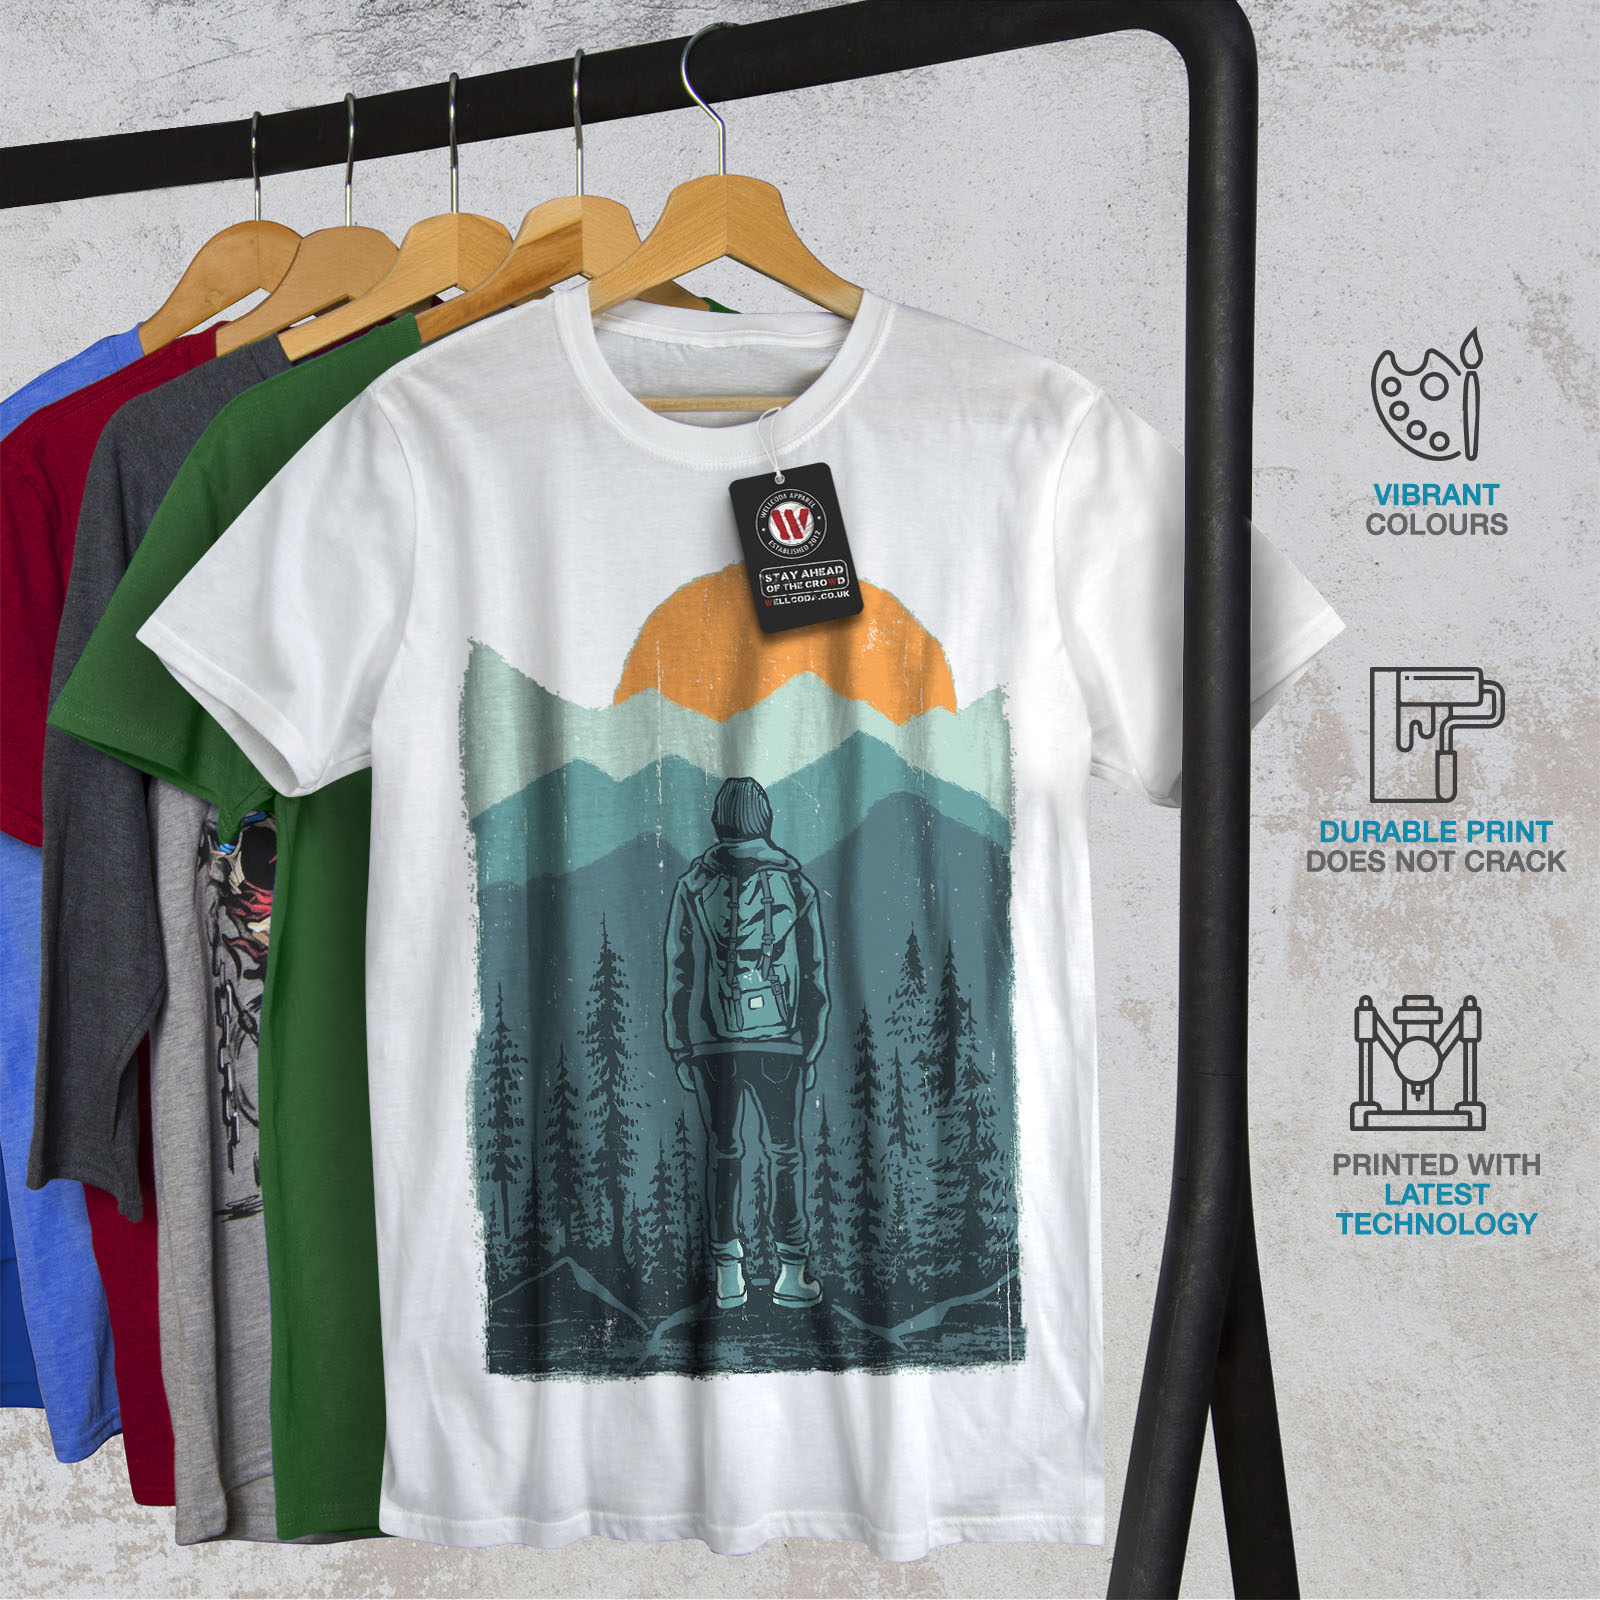 Wellcoda-SUNSET-Wilderness-CAMP-Da-Uomo-T-shirt-Wild-design-grafico-stampato-T-shirt miniatura 12